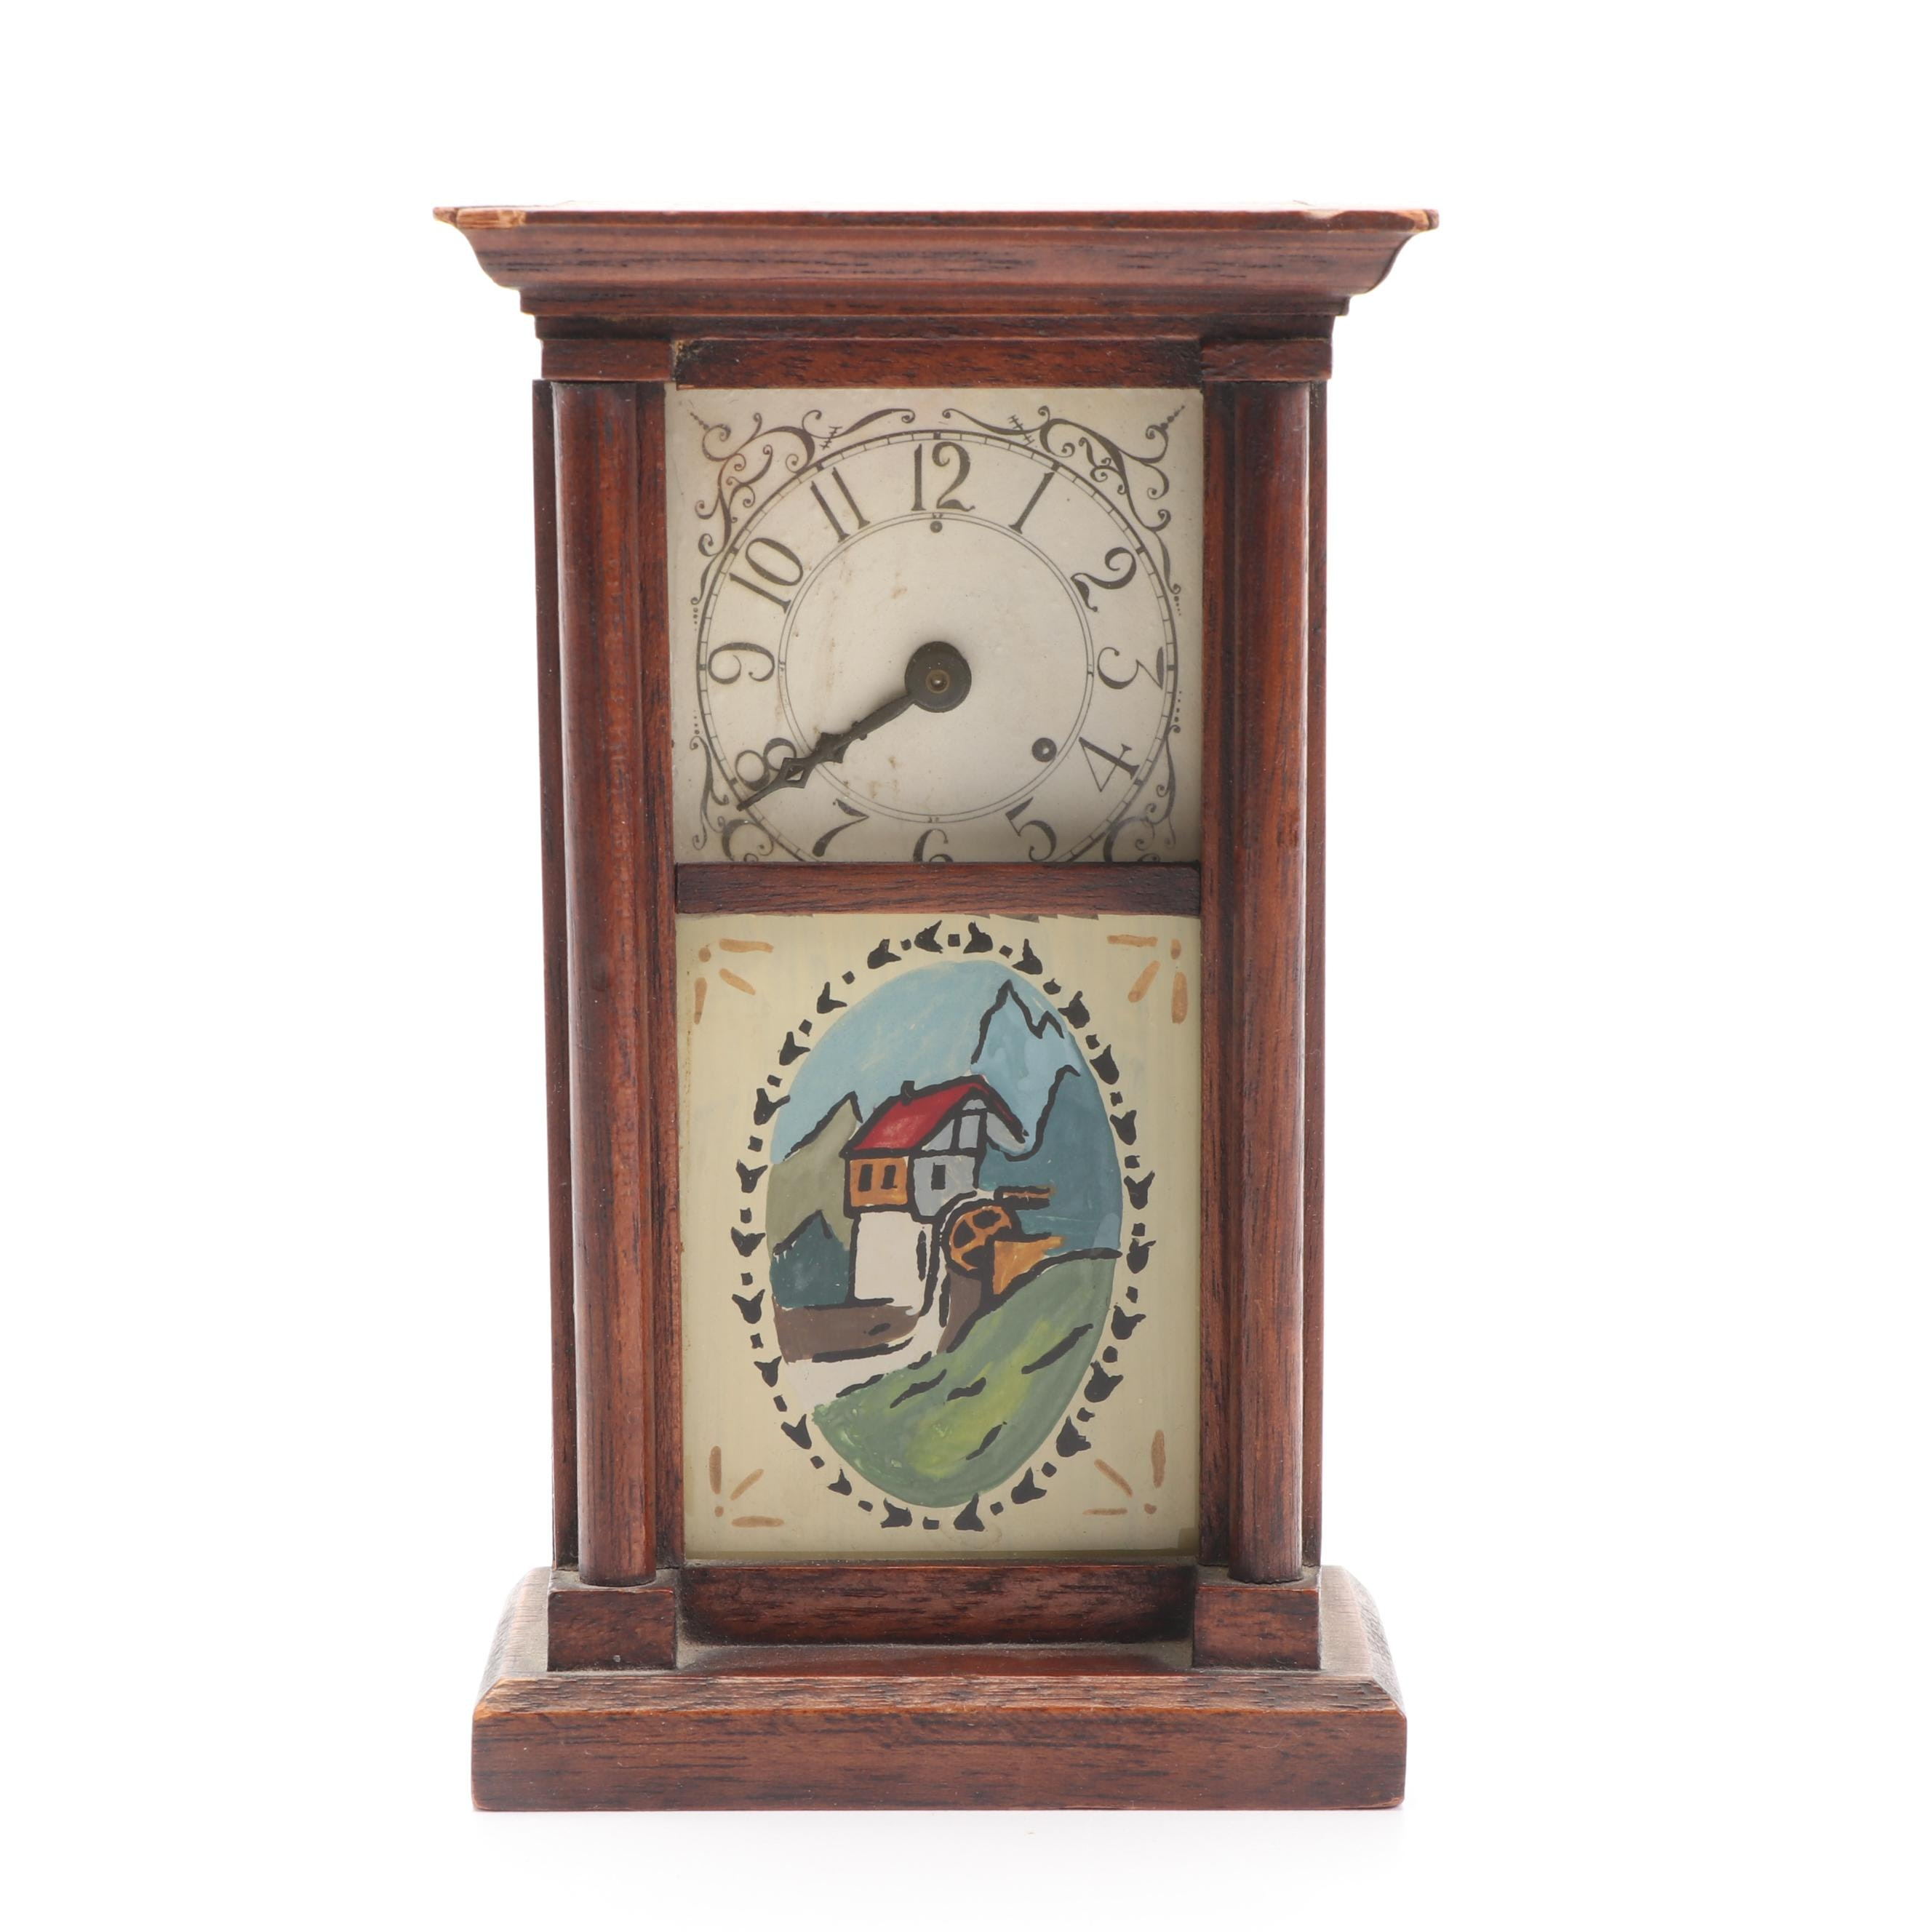 Marlow & Co. Miniature Reproduction of Jerome and Darrow Shelf Clock